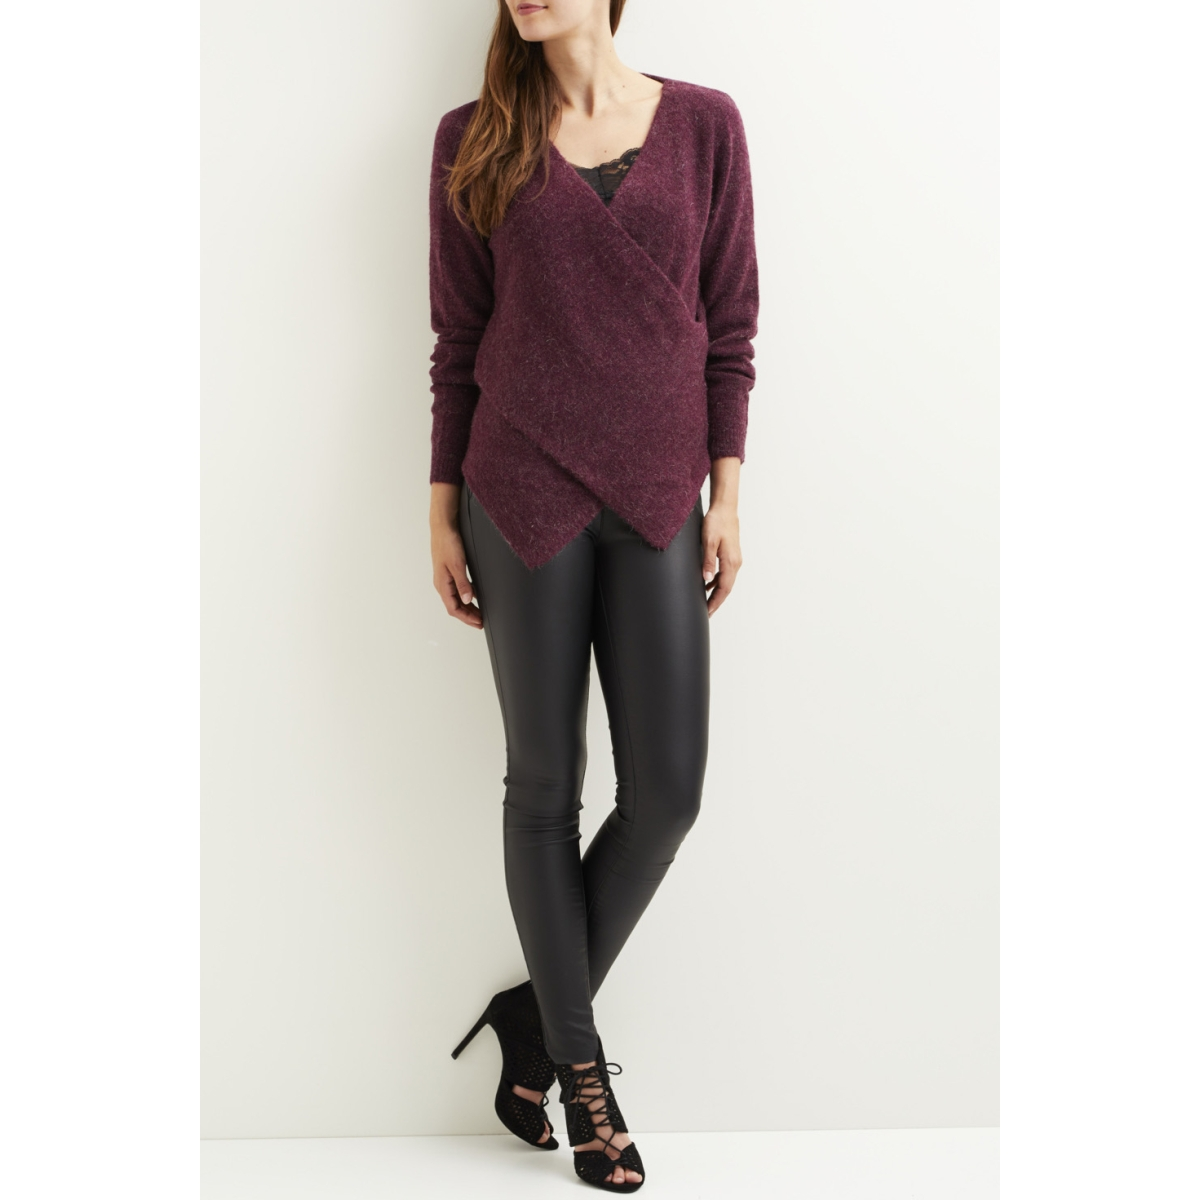 vicant wrap knit top-fav 14043488 vila trui fig/melange